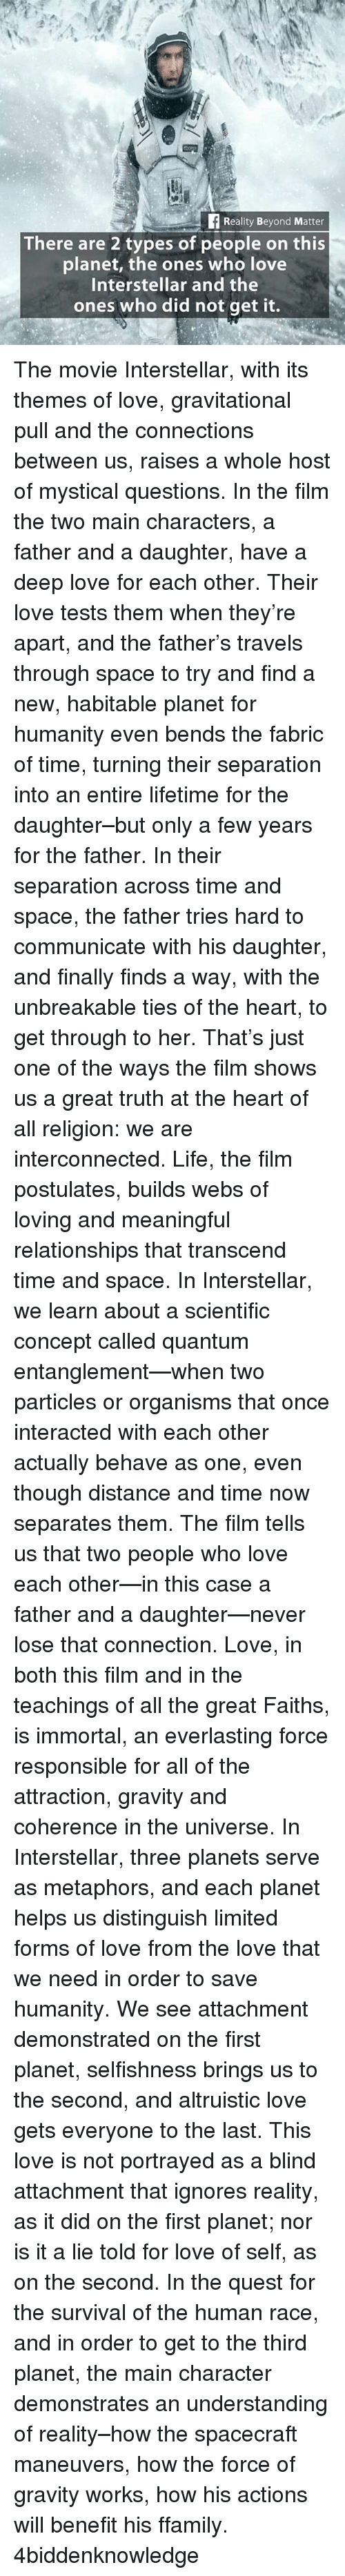 Transcendance: Reality Beyond Matter  There are 2 types of people on this  planet, the ones who love  Interstellar and the  ones who did not get it. The movie Interstellar, with its themes of love, gravitational pull and the connections between us, raises a whole host of mystical questions. In the film the two main characters, a father and a daughter, have a deep love for each other. Their love tests them when they're apart, and the father's travels through space to try and find a new, habitable planet for humanity even bends the fabric of time, turning their separation into an entire lifetime for the daughter–but only a few years for the father. In their separation across time and space, the father tries hard to communicate with his daughter, and finally finds a way, with the unbreakable ties of the heart, to get through to her. That's just one of the ways the film shows us a great truth at the heart of all religion: we are interconnected. Life, the film postulates, builds webs of loving and meaningful relationships that transcend time and space. In Interstellar, we learn about a scientific concept called quantum entanglement—when two particles or organisms that once interacted with each other actually behave as one, even though distance and time now separates them. The film tells us that two people who love each other—in this case a father and a daughter—never lose that connection. Love, in both this film and in the teachings of all the great Faiths, is immortal, an everlasting force responsible for all of the attraction, gravity and coherence in the universe. In Interstellar, three planets serve as metaphors, and each planet helps us distinguish limited forms of love from the love that we need in order to save humanity. We see attachment demonstrated on the first planet, selfishness brings us to the second, and altruistic love gets everyone to the last. This love is not portrayed as a blind attachment that ignores reality, as it did on the first planet; nor is it